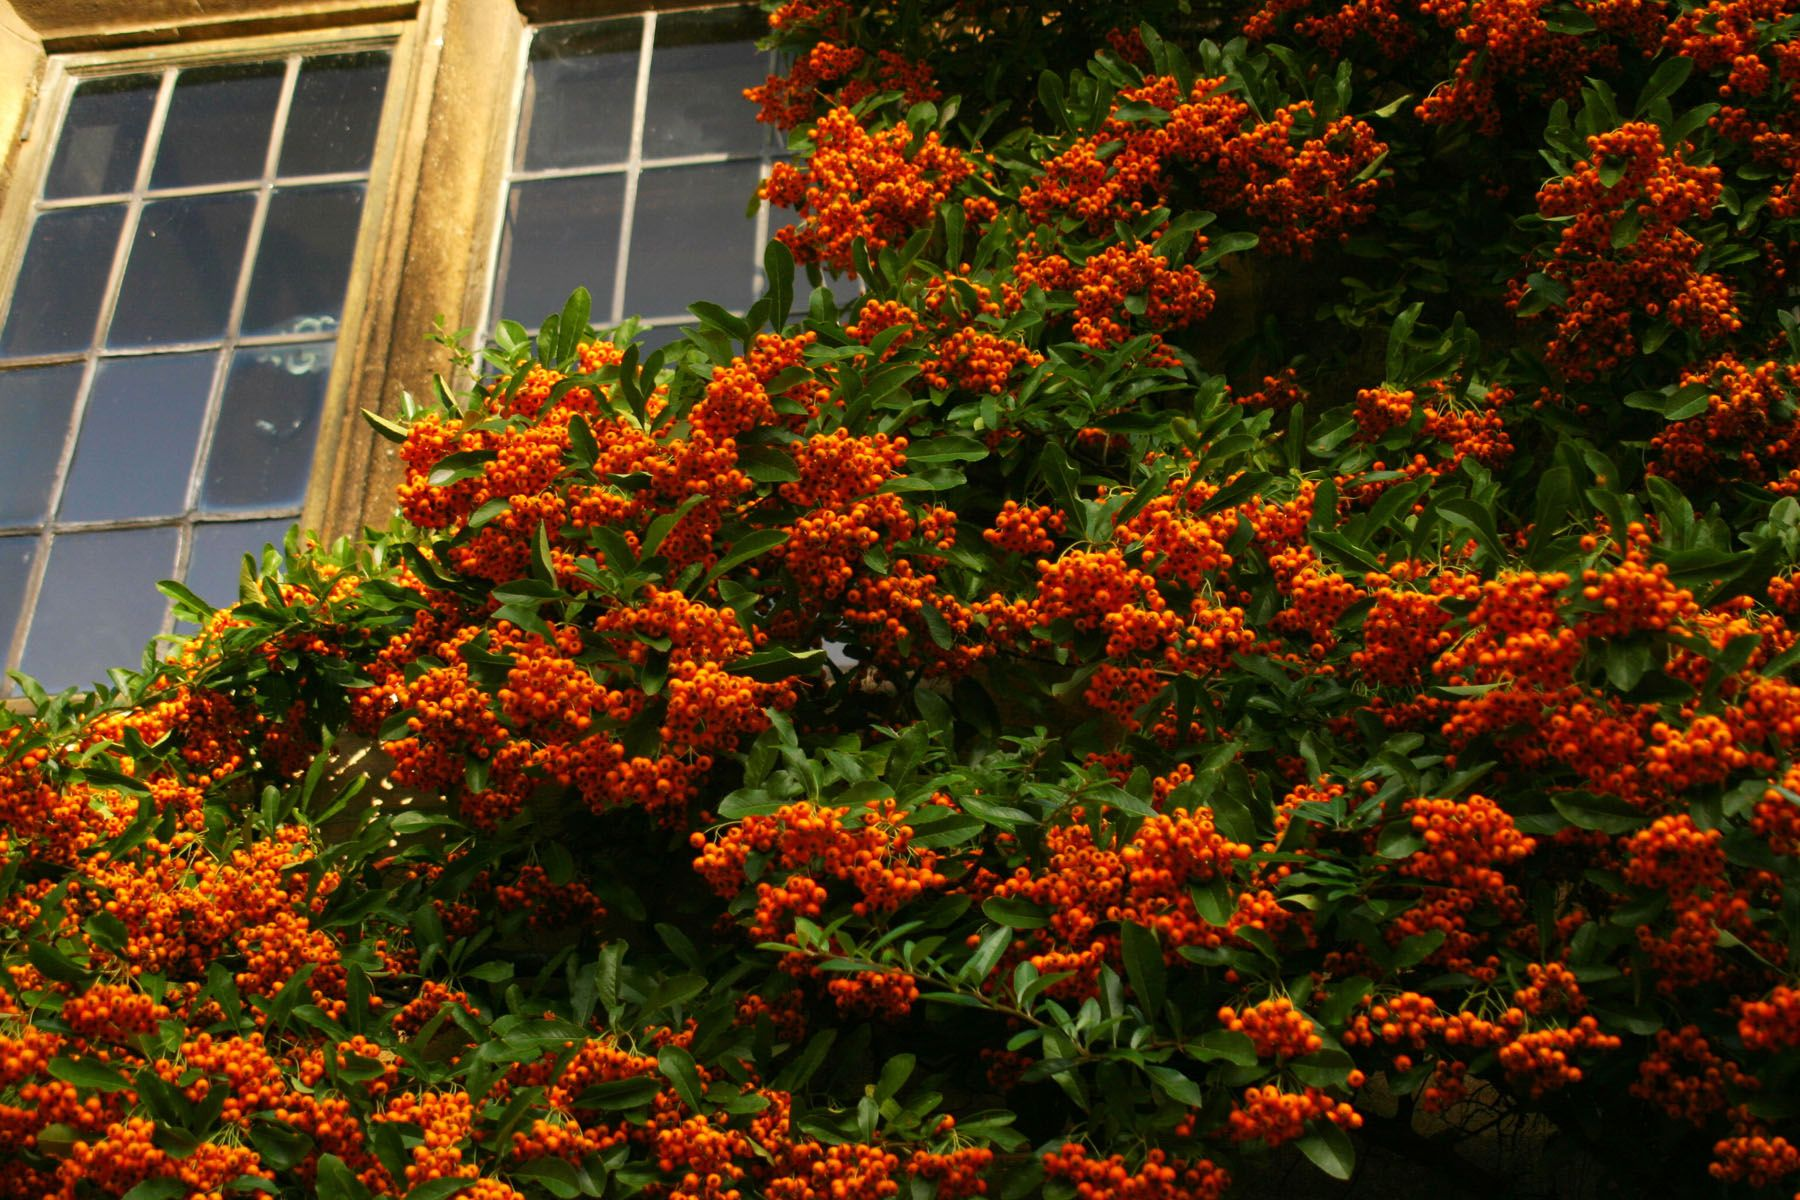 evergreen photo essay ideas - Scarlet Firethorn Pyracantha native to Spain and Iran